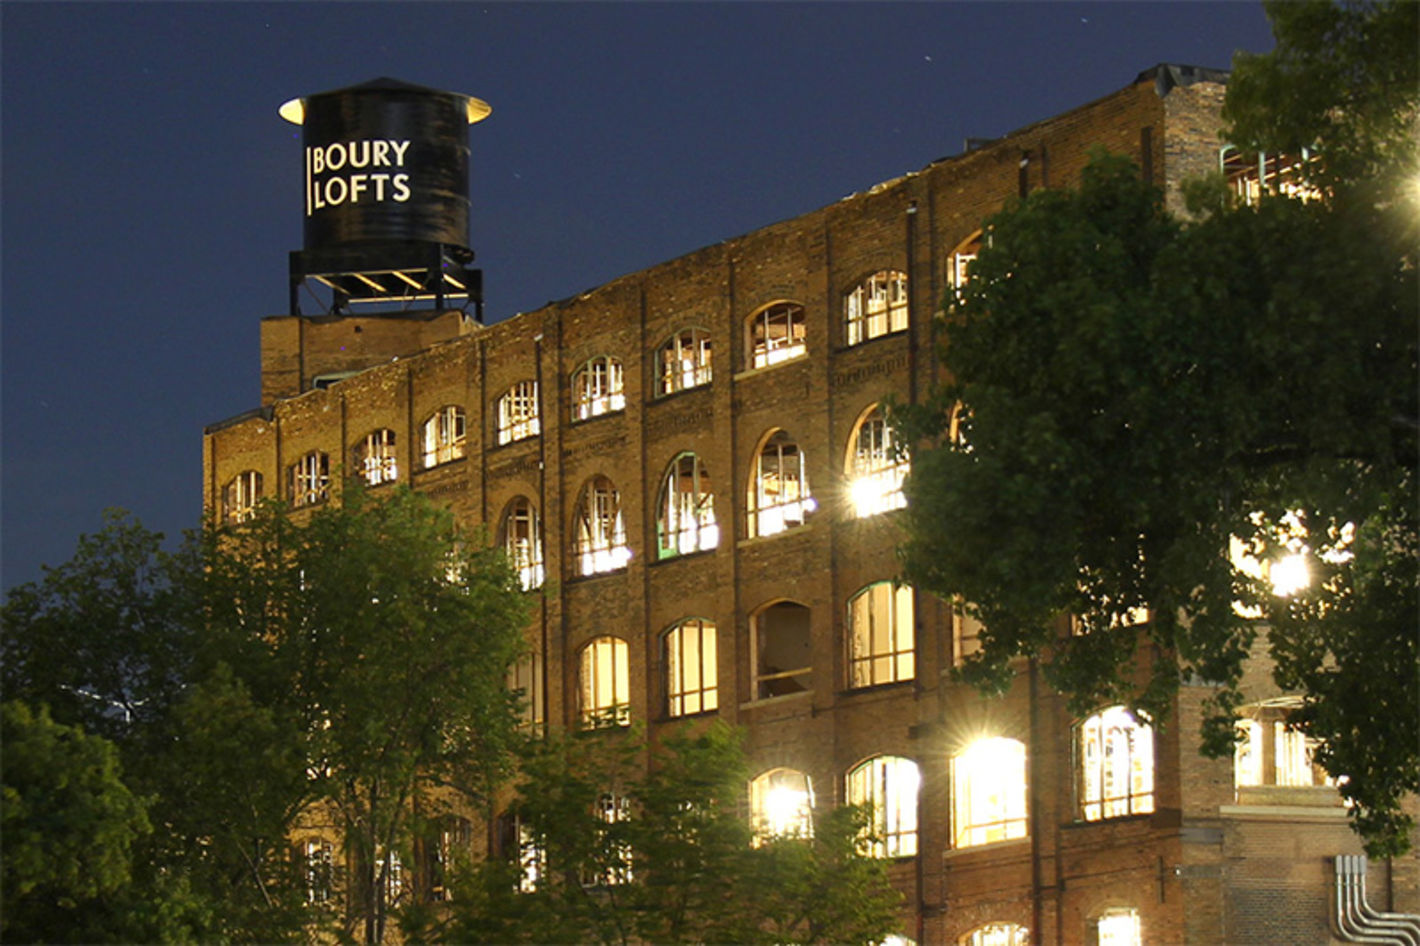 Boury Lofts - Photo